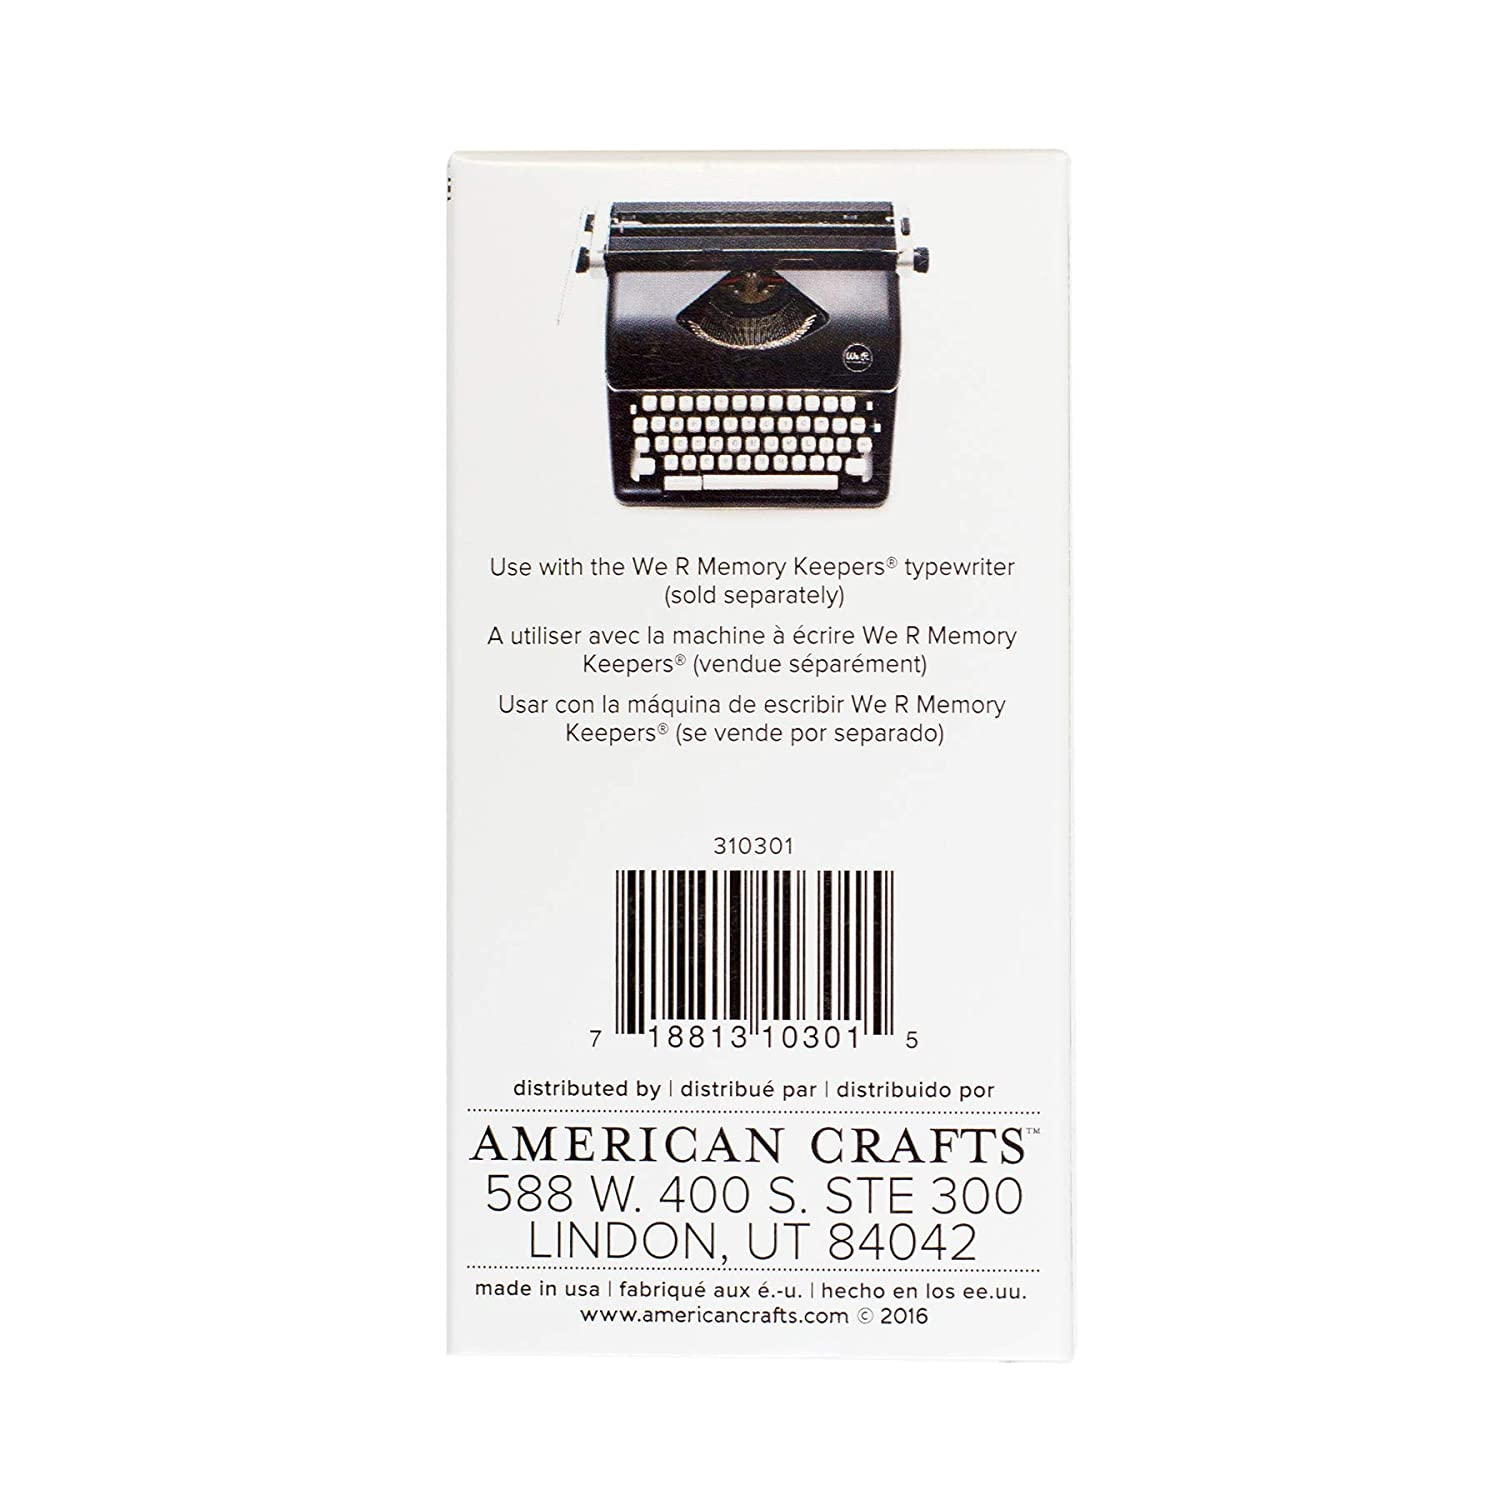 American Crafts Tinta Turquesa para Máquina De Escribir Typecast Typewriter We R Memory Keepers: Amazon.es: Hogar